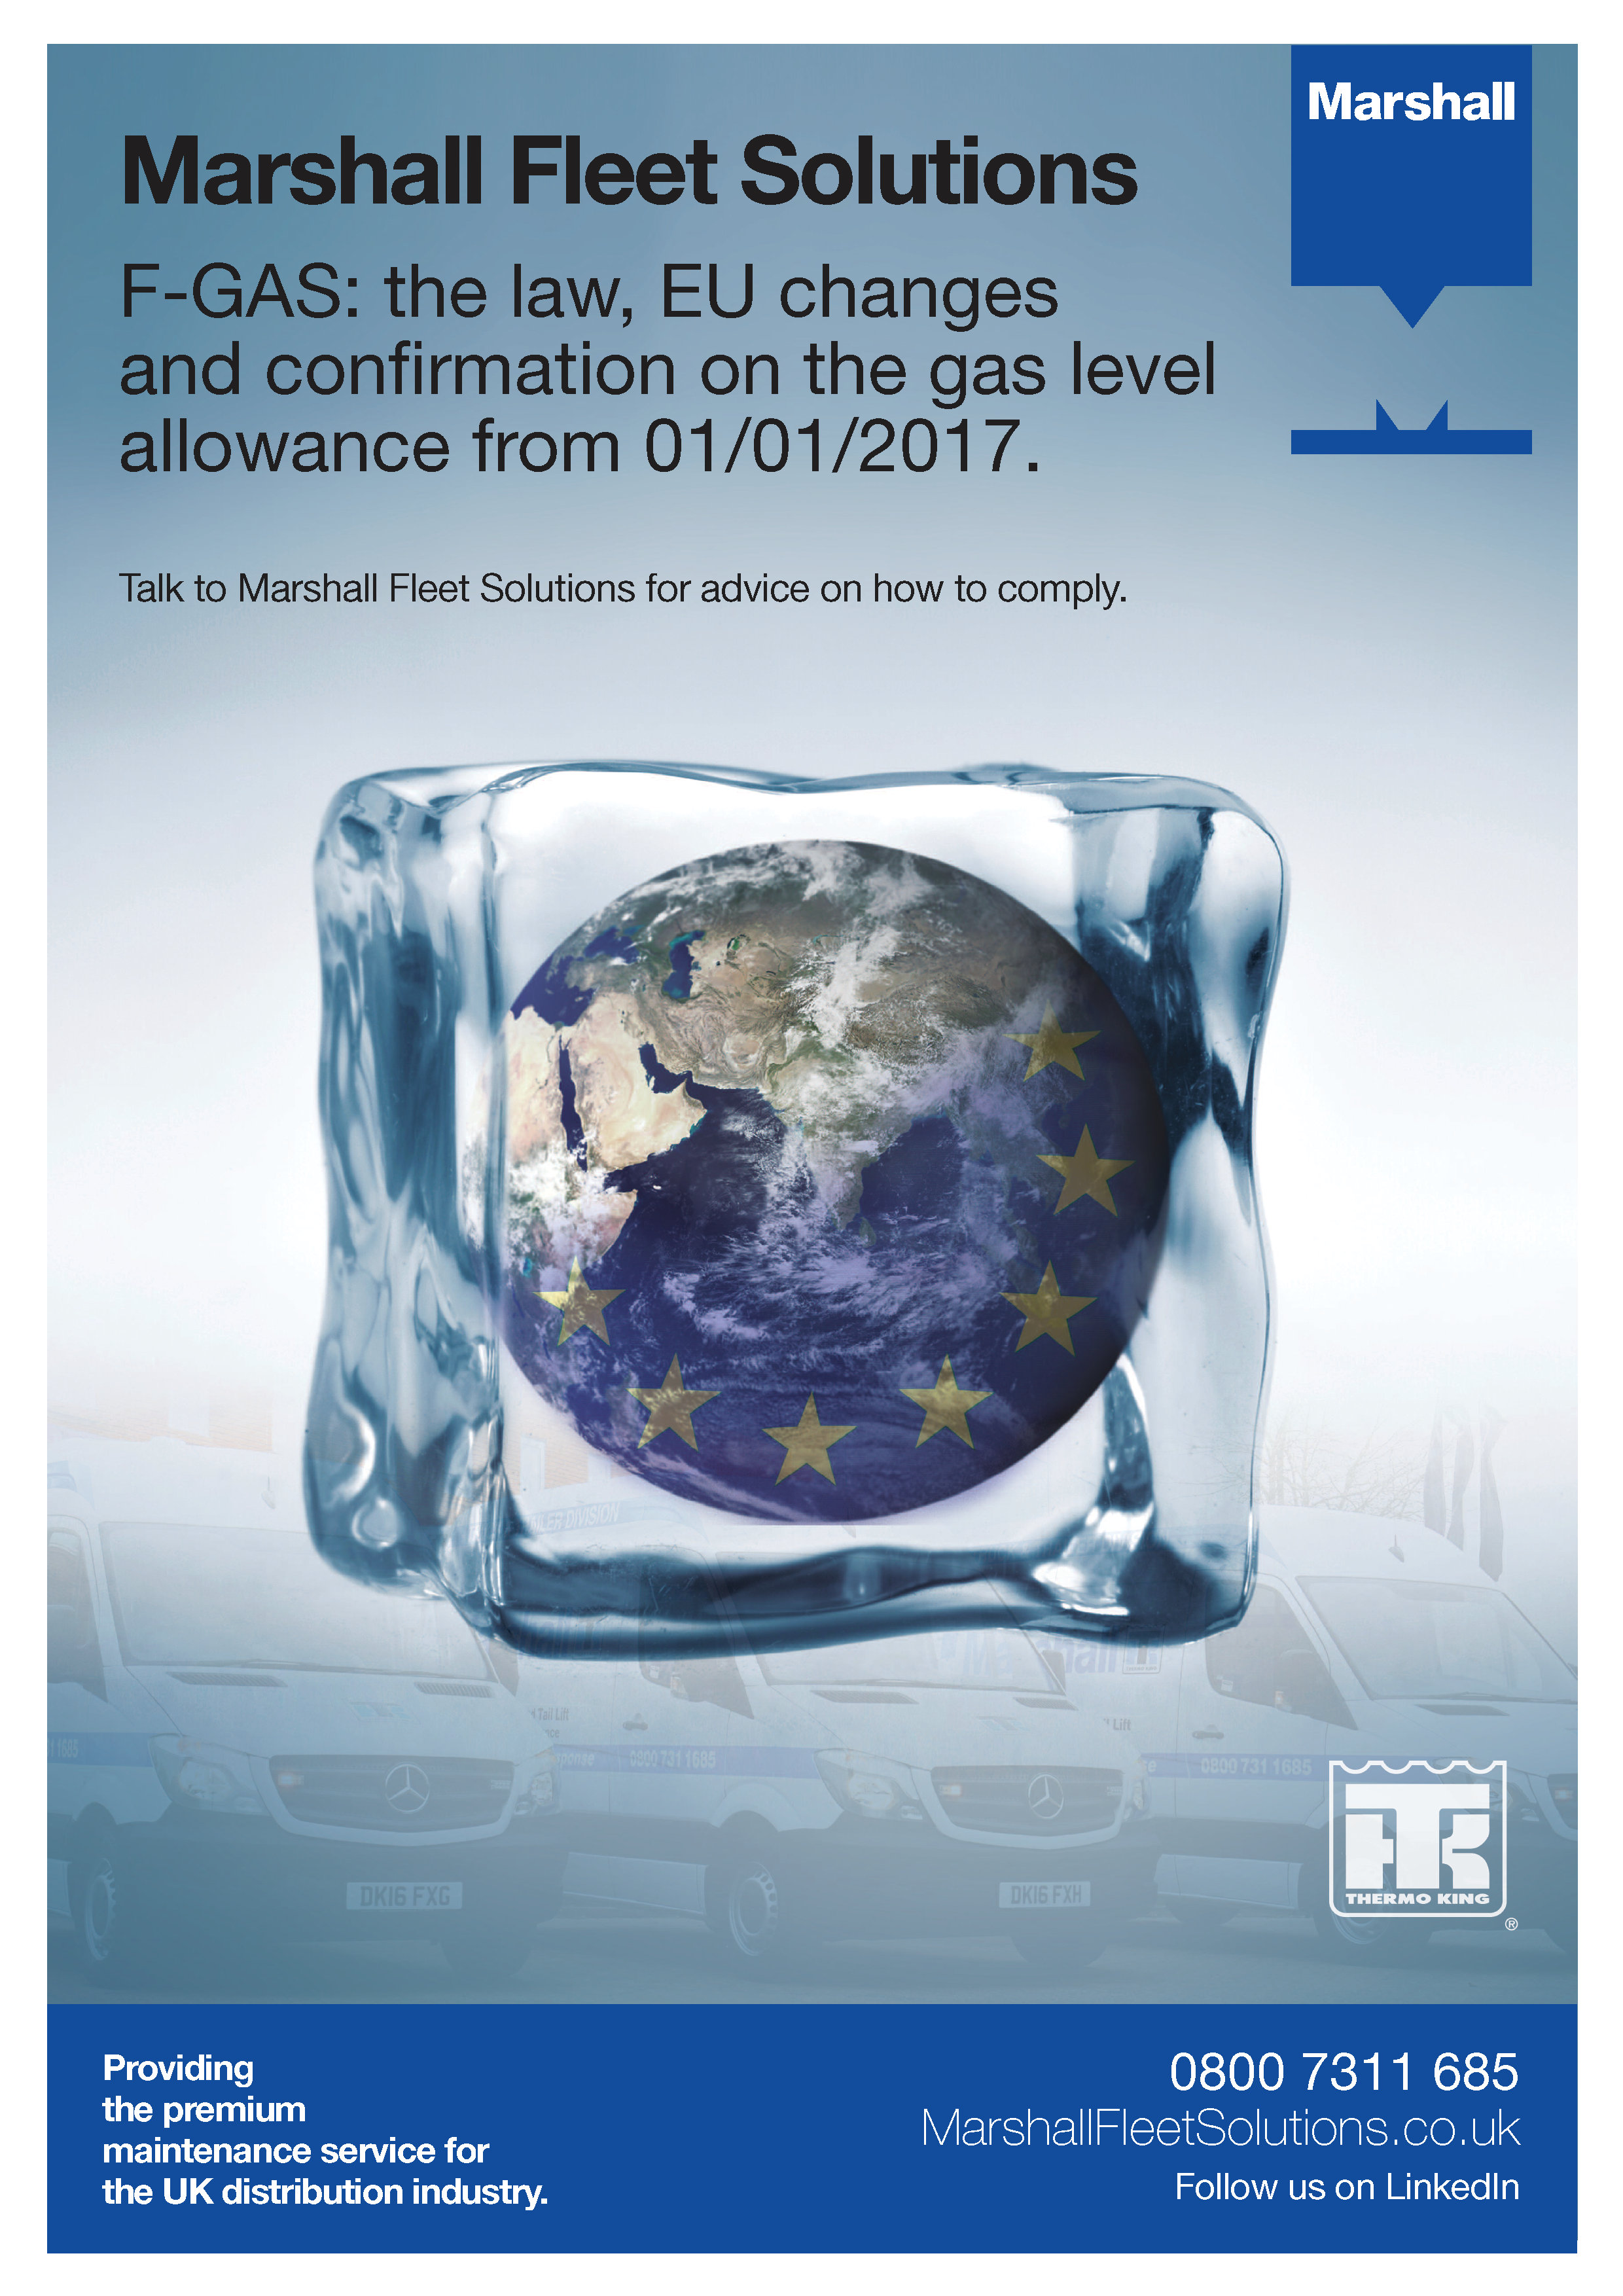 F-GAS: the law, EU changes and confirmation on the gas level allowance from 01/01/2017